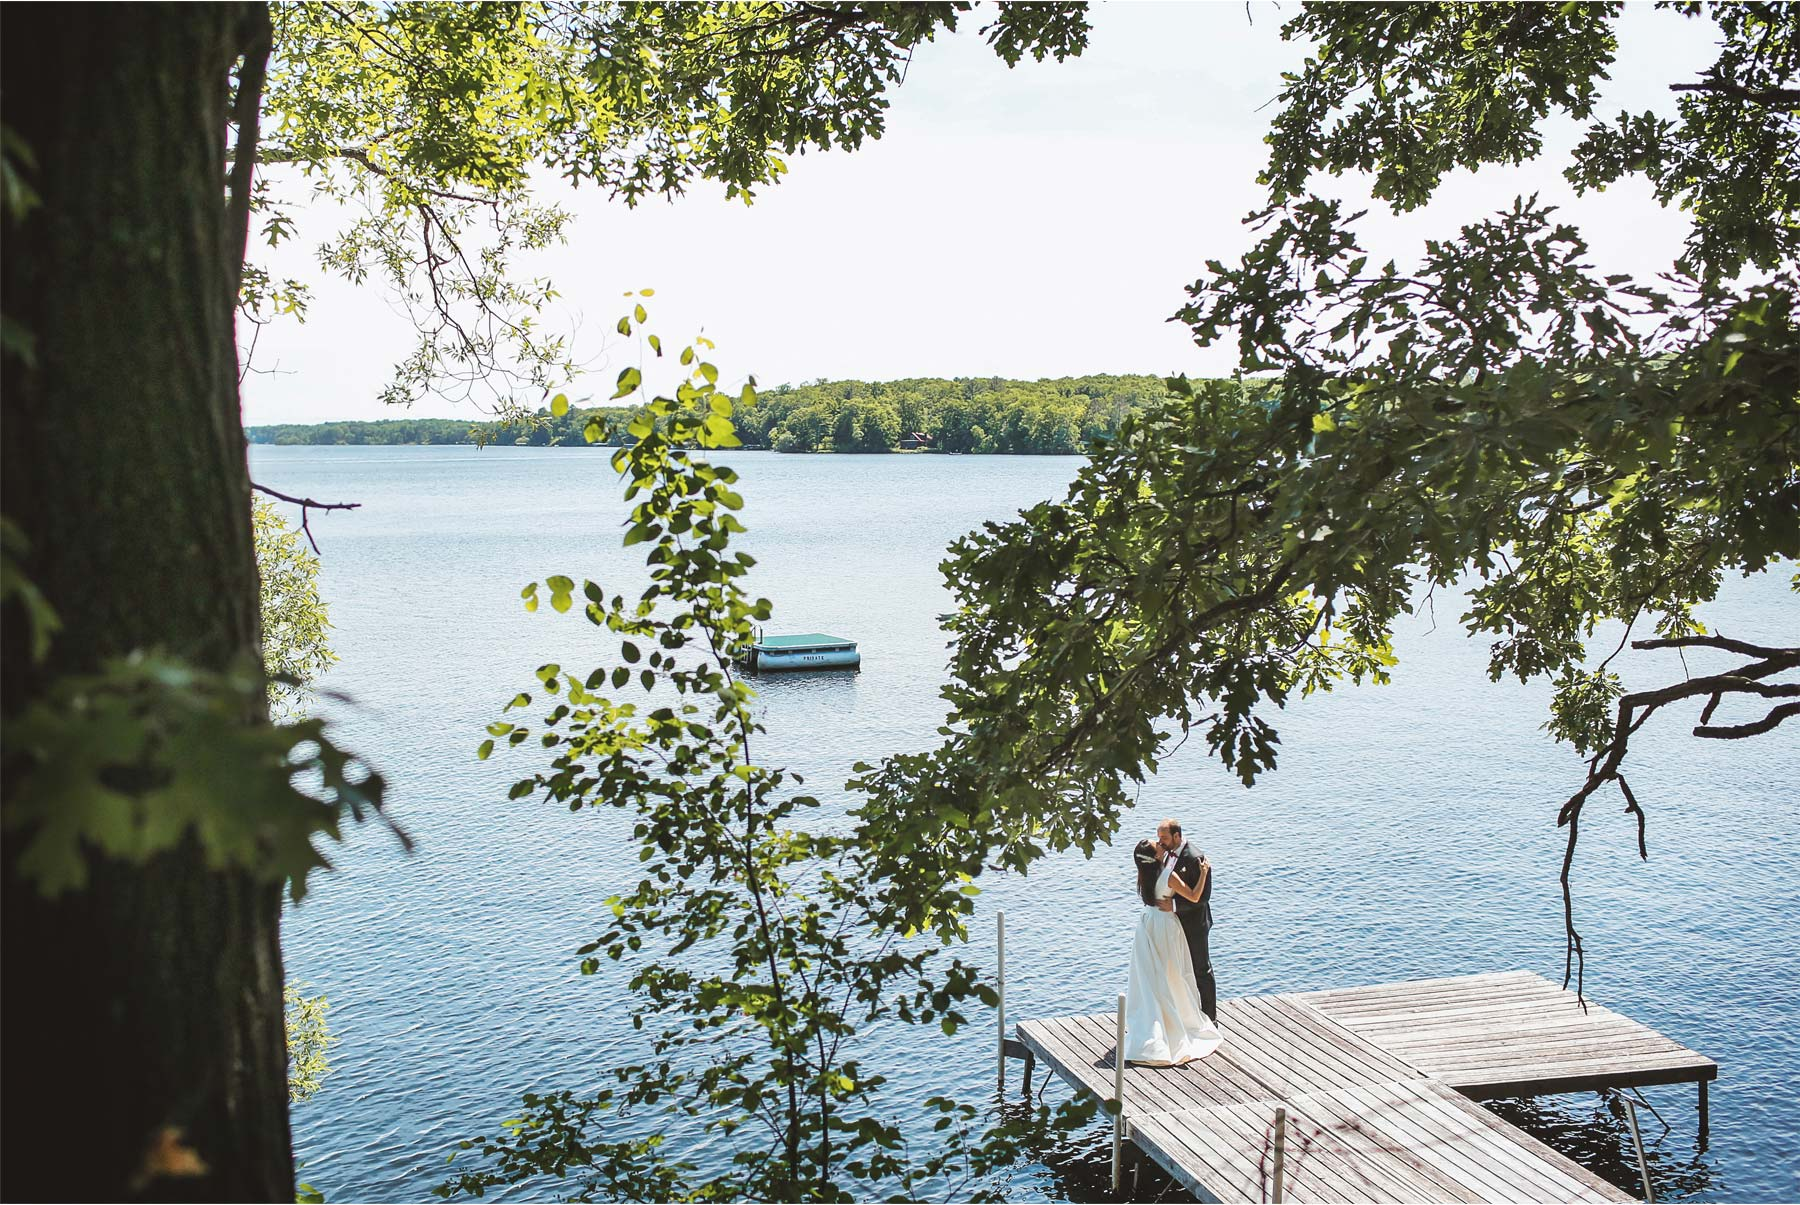 09-Vick-Photography-Wedding-Stouts-Island-Lodge-Wisconsin-Summer-First-Look-Lake-Groom-Bride-Kiss-MiJa-and-Lucius.jpg